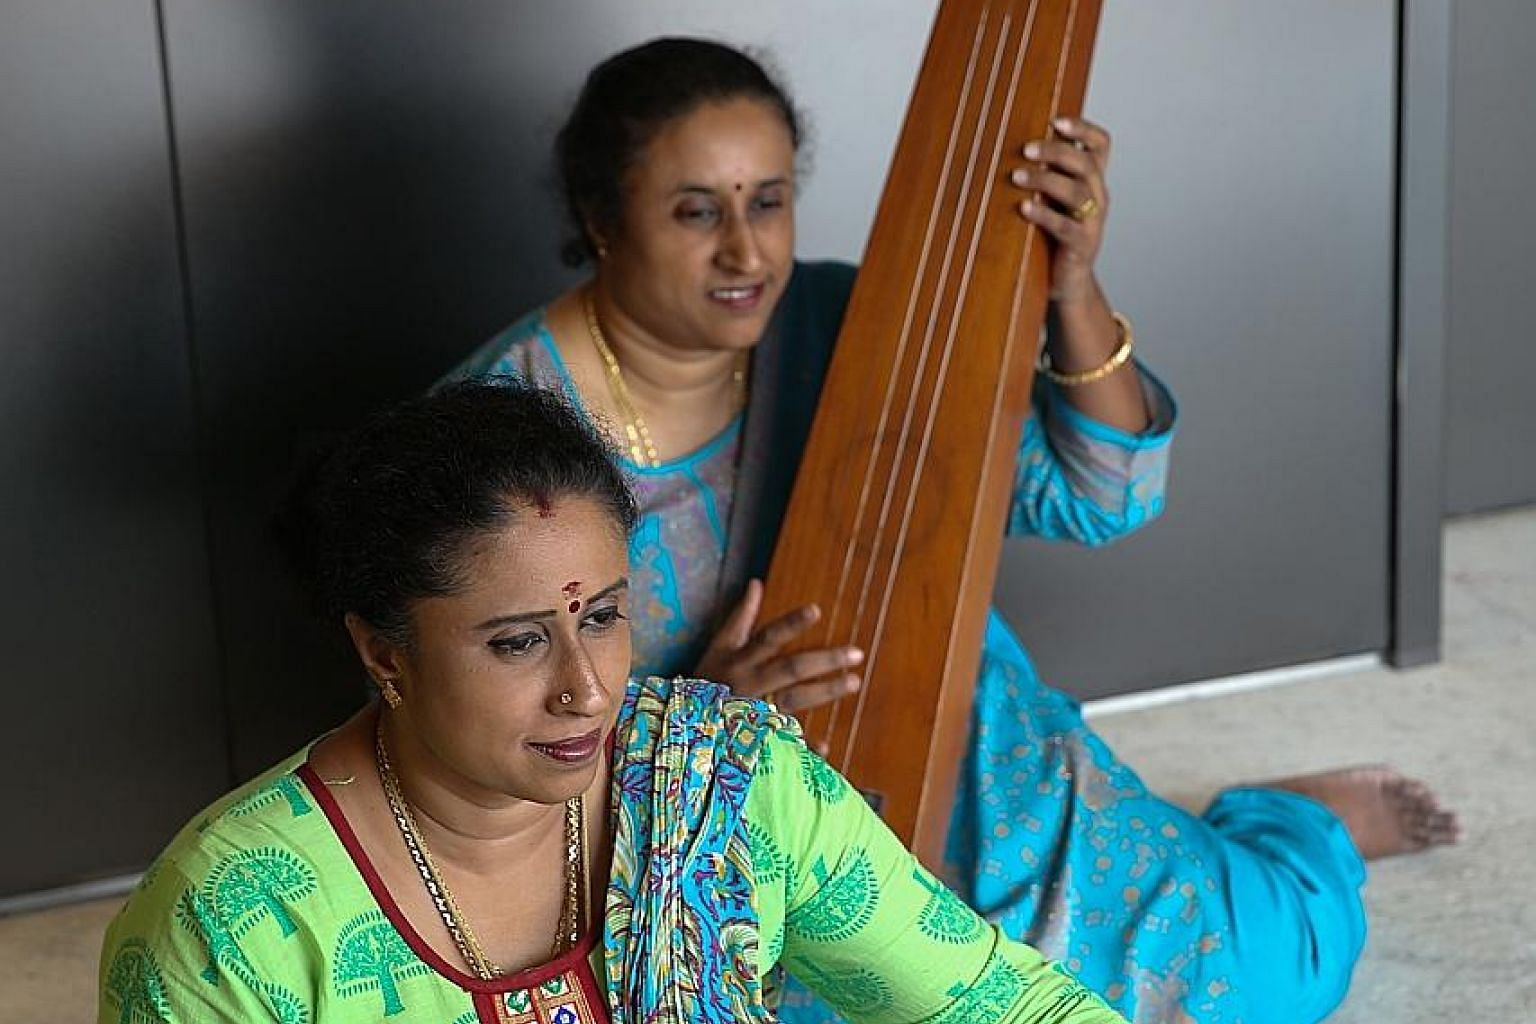 Twin sisters Chandrakala Kunaseelan, holding a double-headed drum called the mridangam, and Shashikala Samugan Nathan, holding a long-necked plucked string instrument called the tambura. The 45-year-old granddaughters of the late percussionist M.V. G